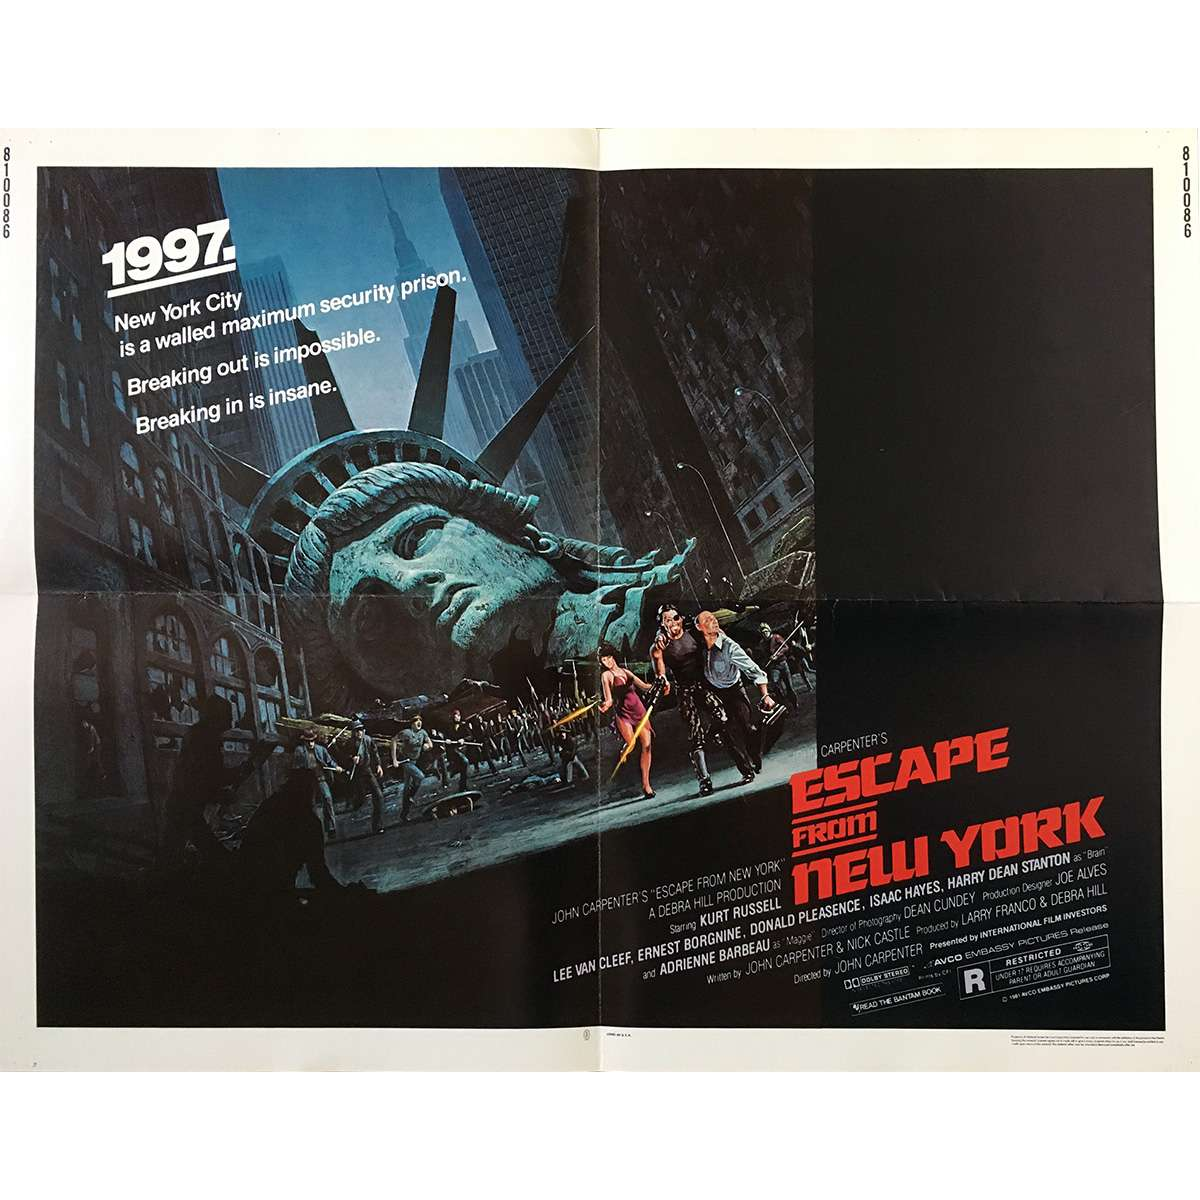 ESCAPE FROM NEW-YORK Movie Poster 21x28 In